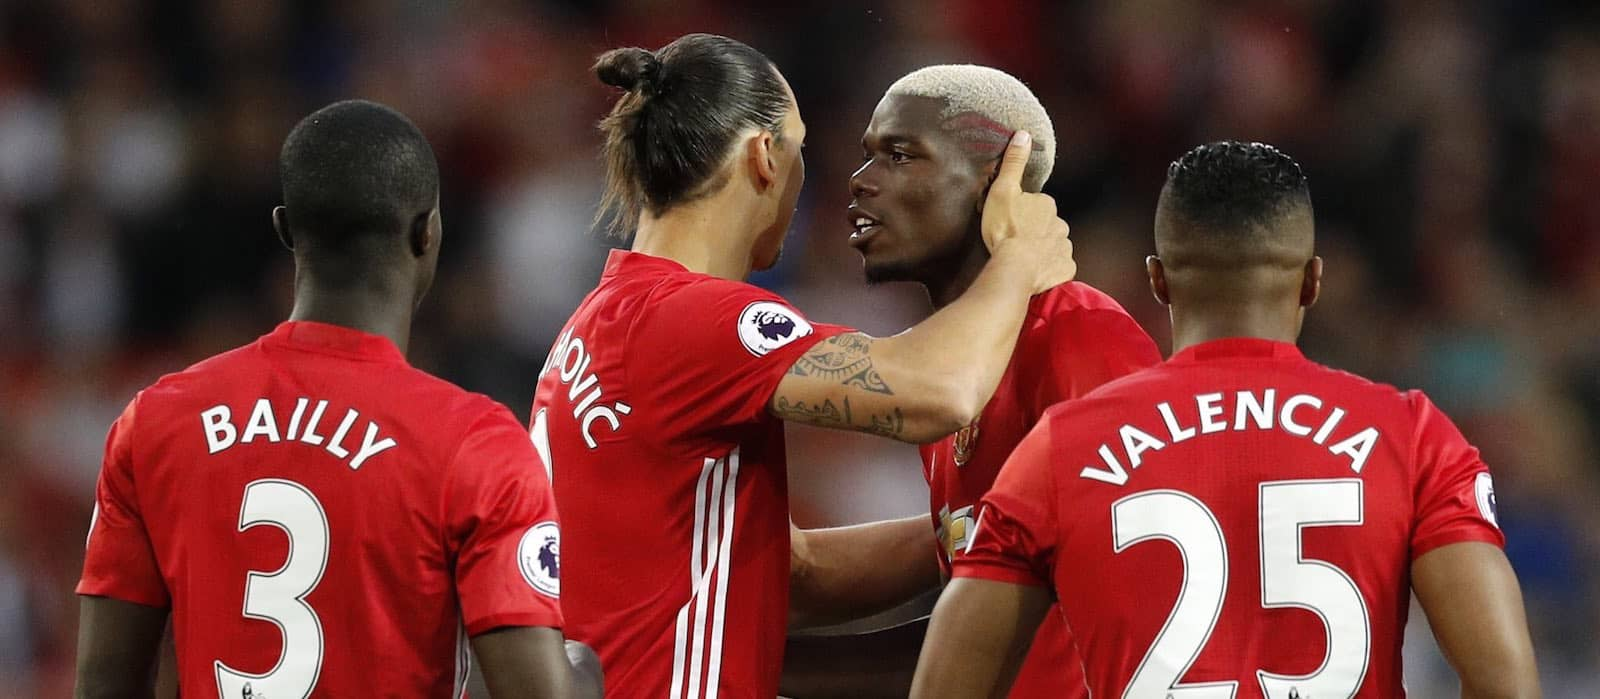 Manchester United boosted by return of Paul Pogba while Ibrahimovic continues training by himself in recovery – report